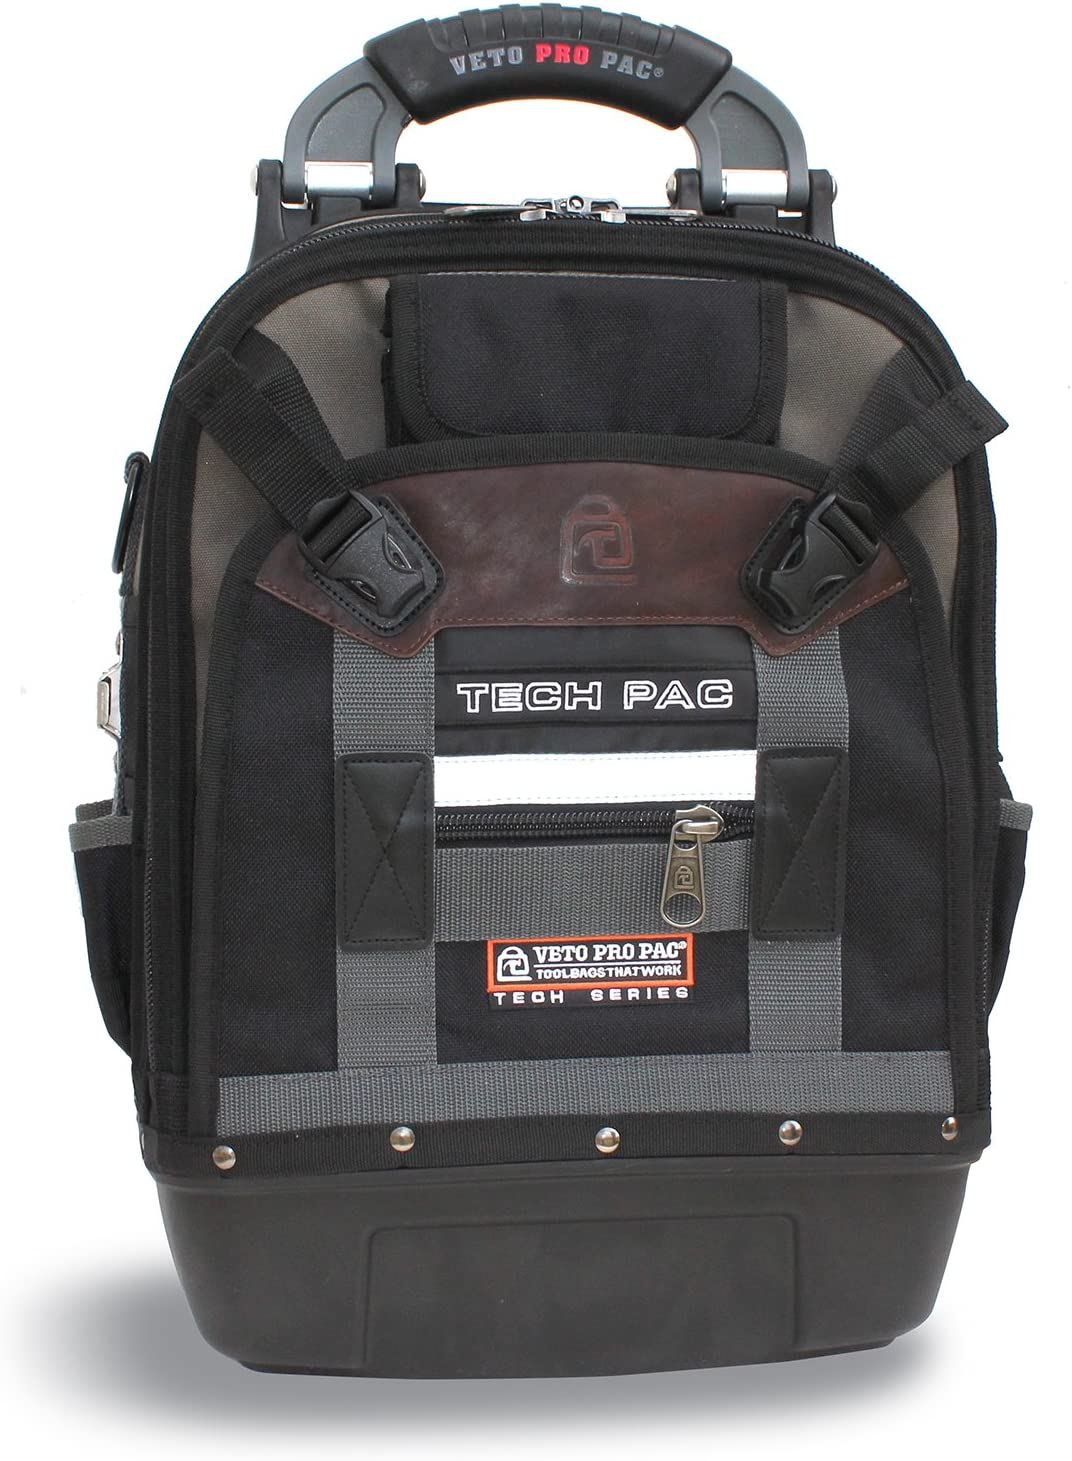 Veto Pro Pac TECH PAC Service Technician Bag